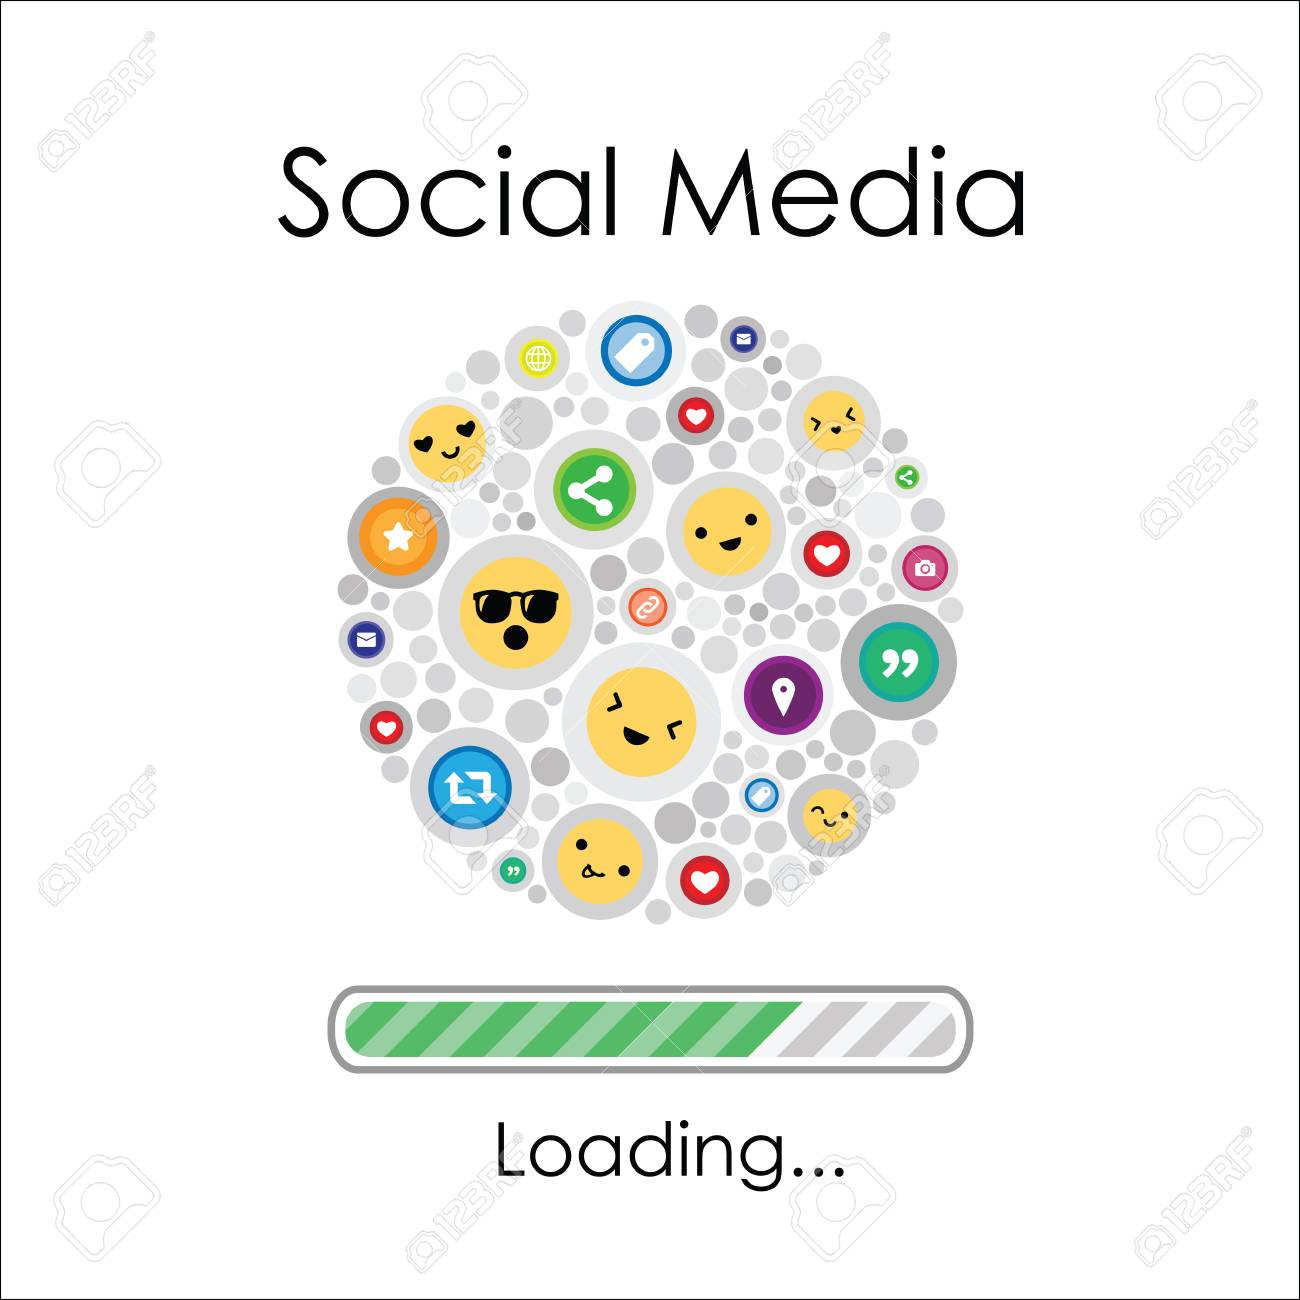 vector illustration of social media emoji and icons and loading